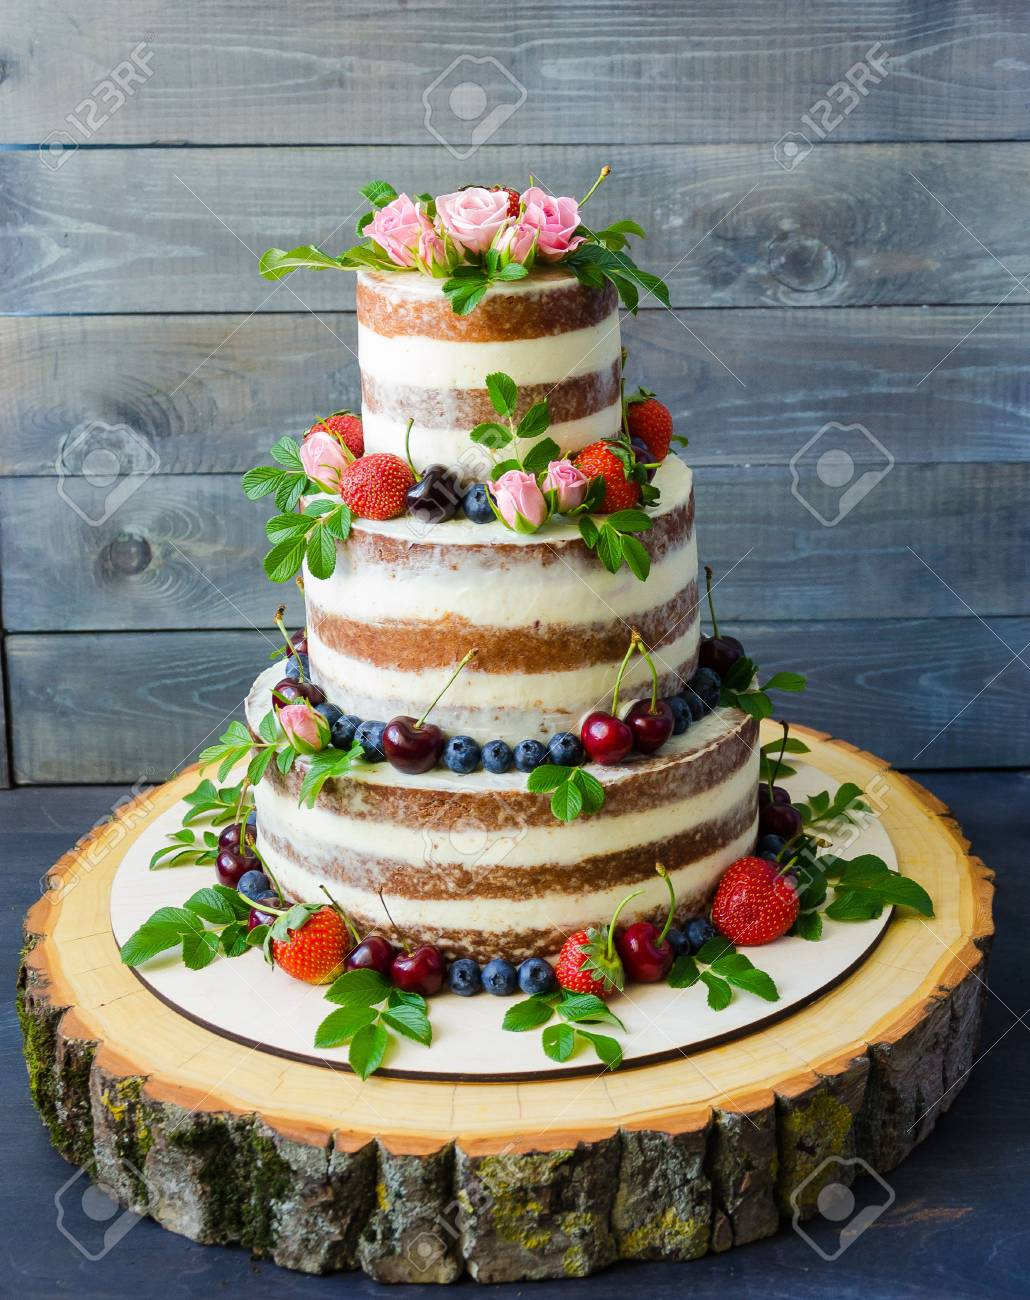 Naked Wedding Cake Decorated With Berries And Flowers Stock Photo